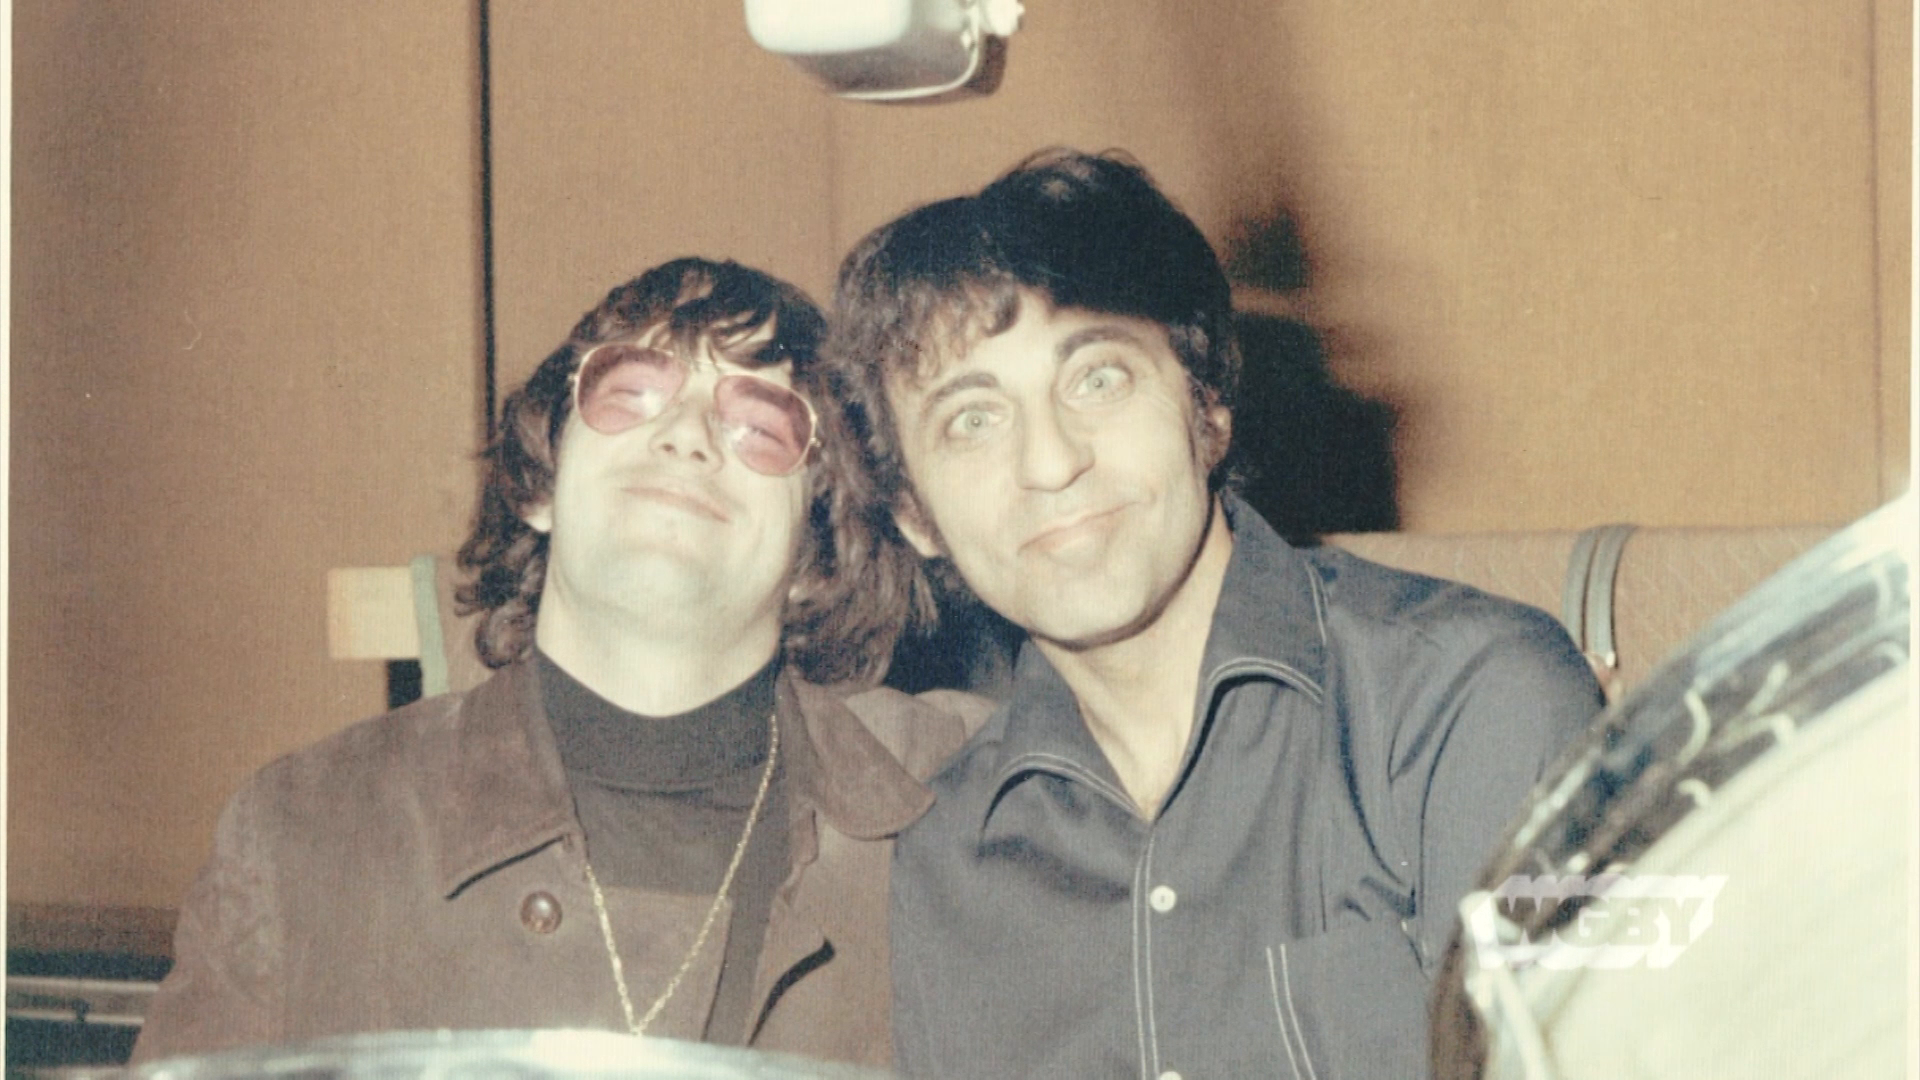 Explore the legacy of drummer Hal Blaine, who was born in Holyoke and is responsible for the beats backing pop hits from the 1950s through today.